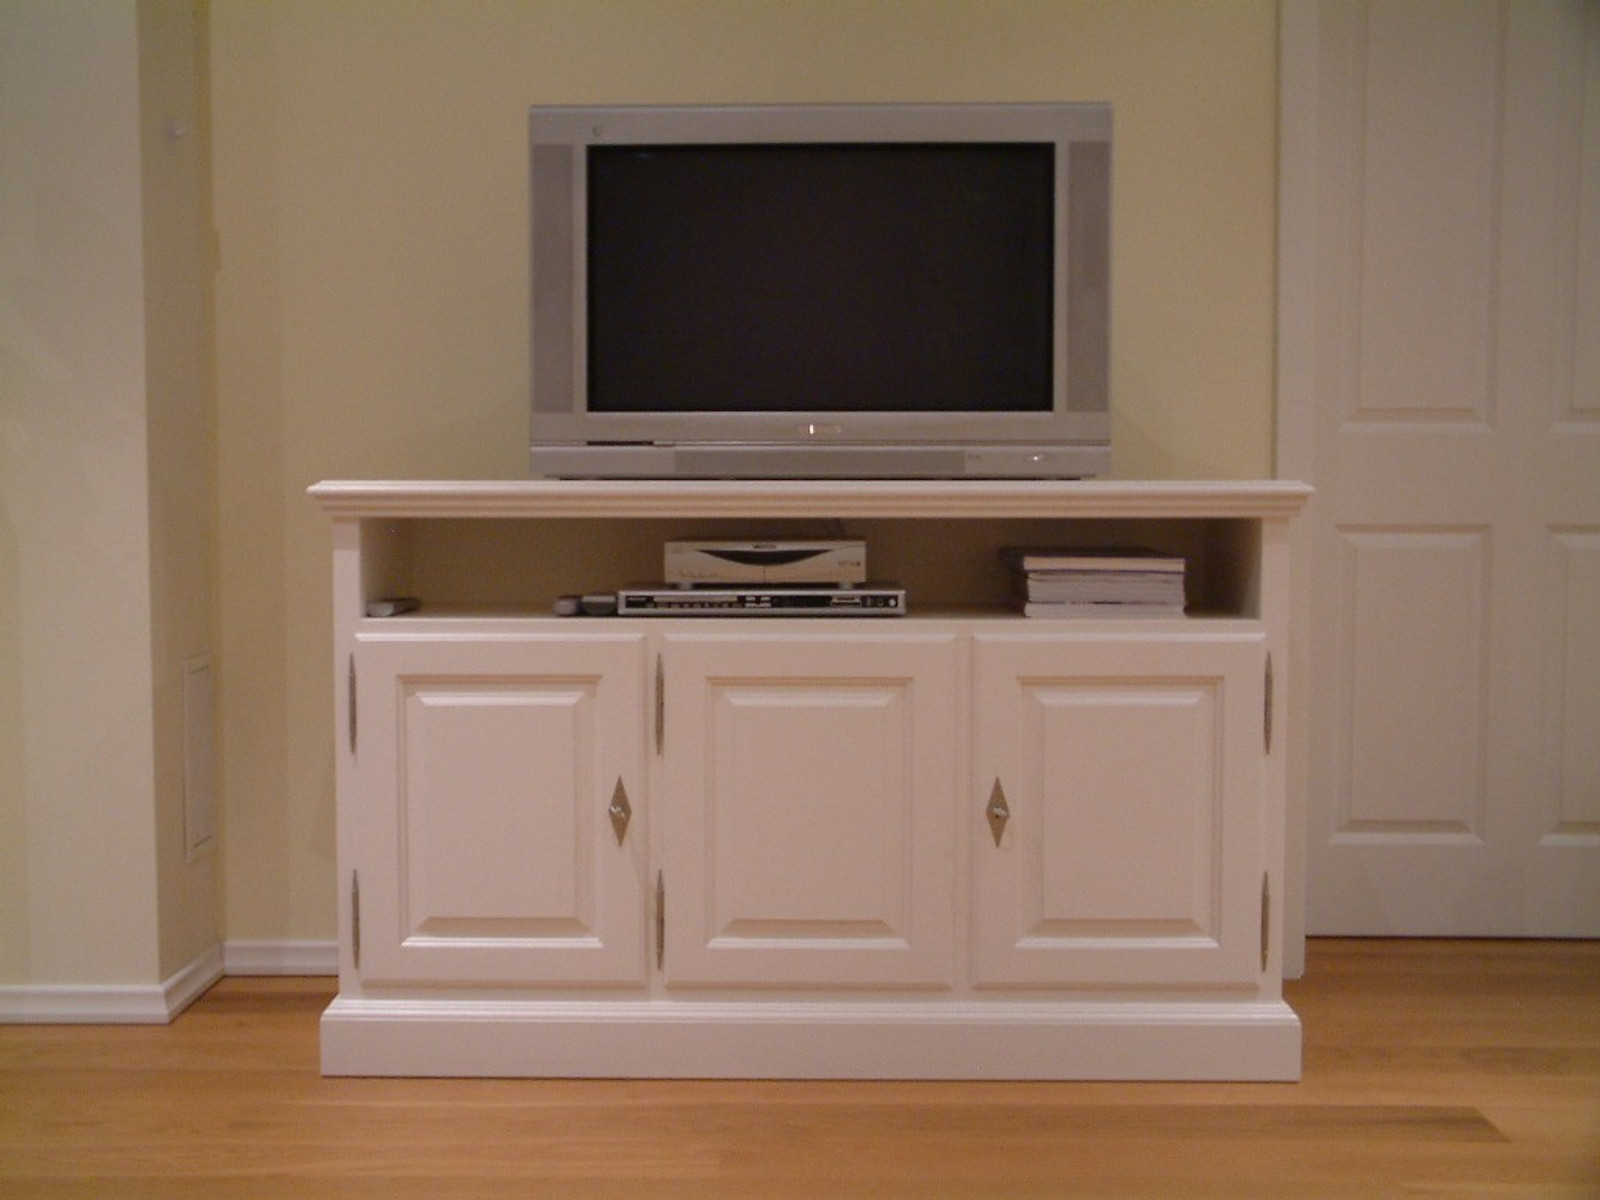 norden tv anrichte fernseh anrichte lowboard in eiche farbton eiche wei modell tv. Black Bedroom Furniture Sets. Home Design Ideas